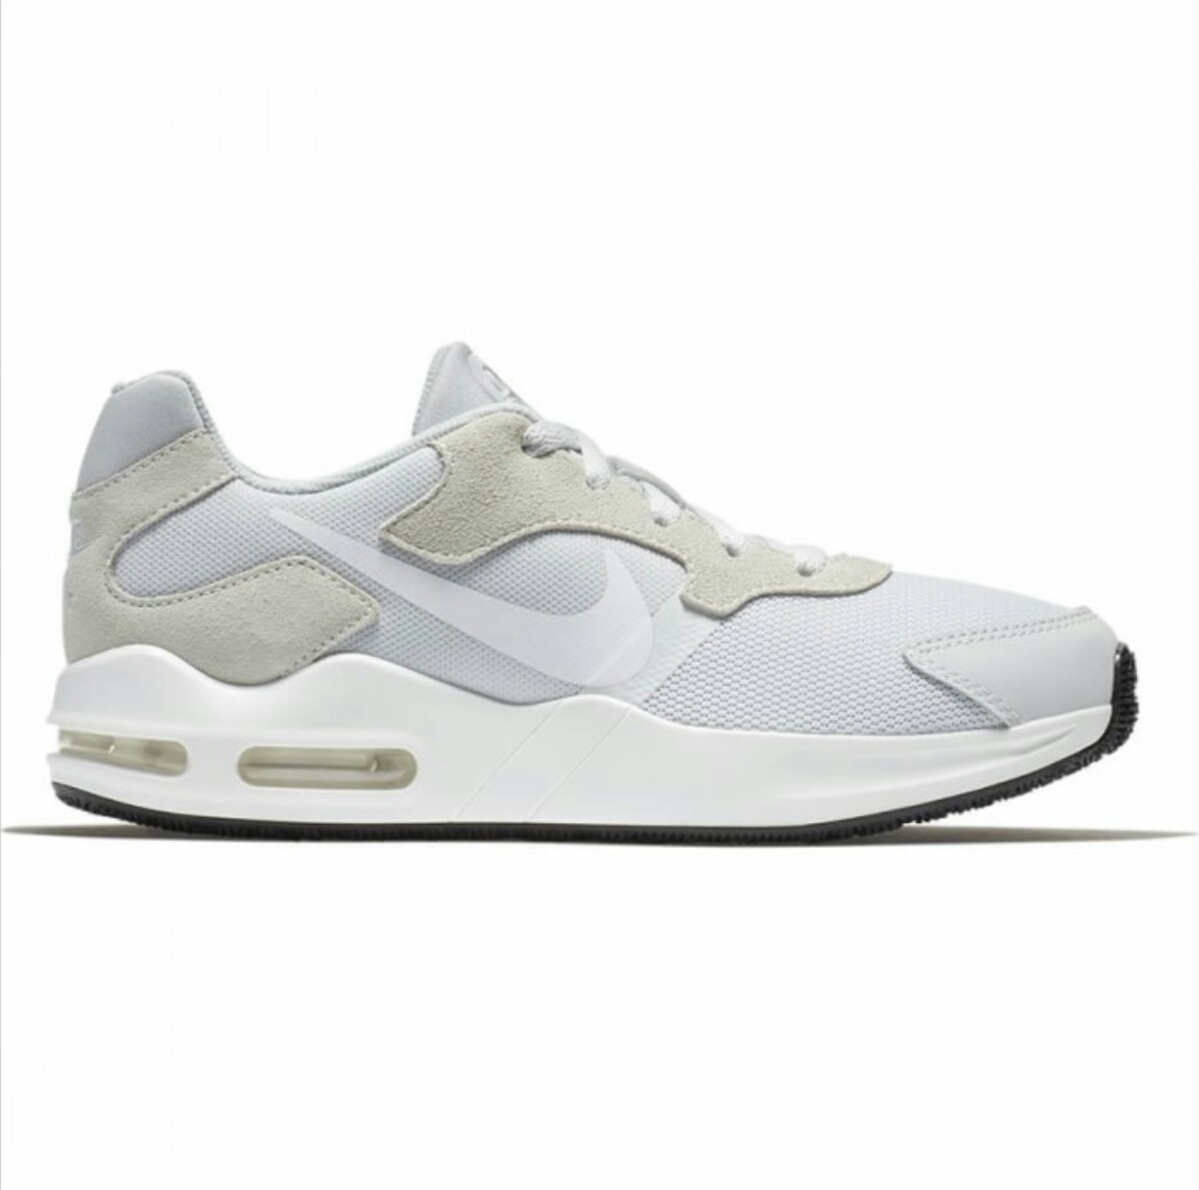 ff649d24357 ... where to buy nike airmax guile mujer. gris y blanco. cargando zoom.  2e334